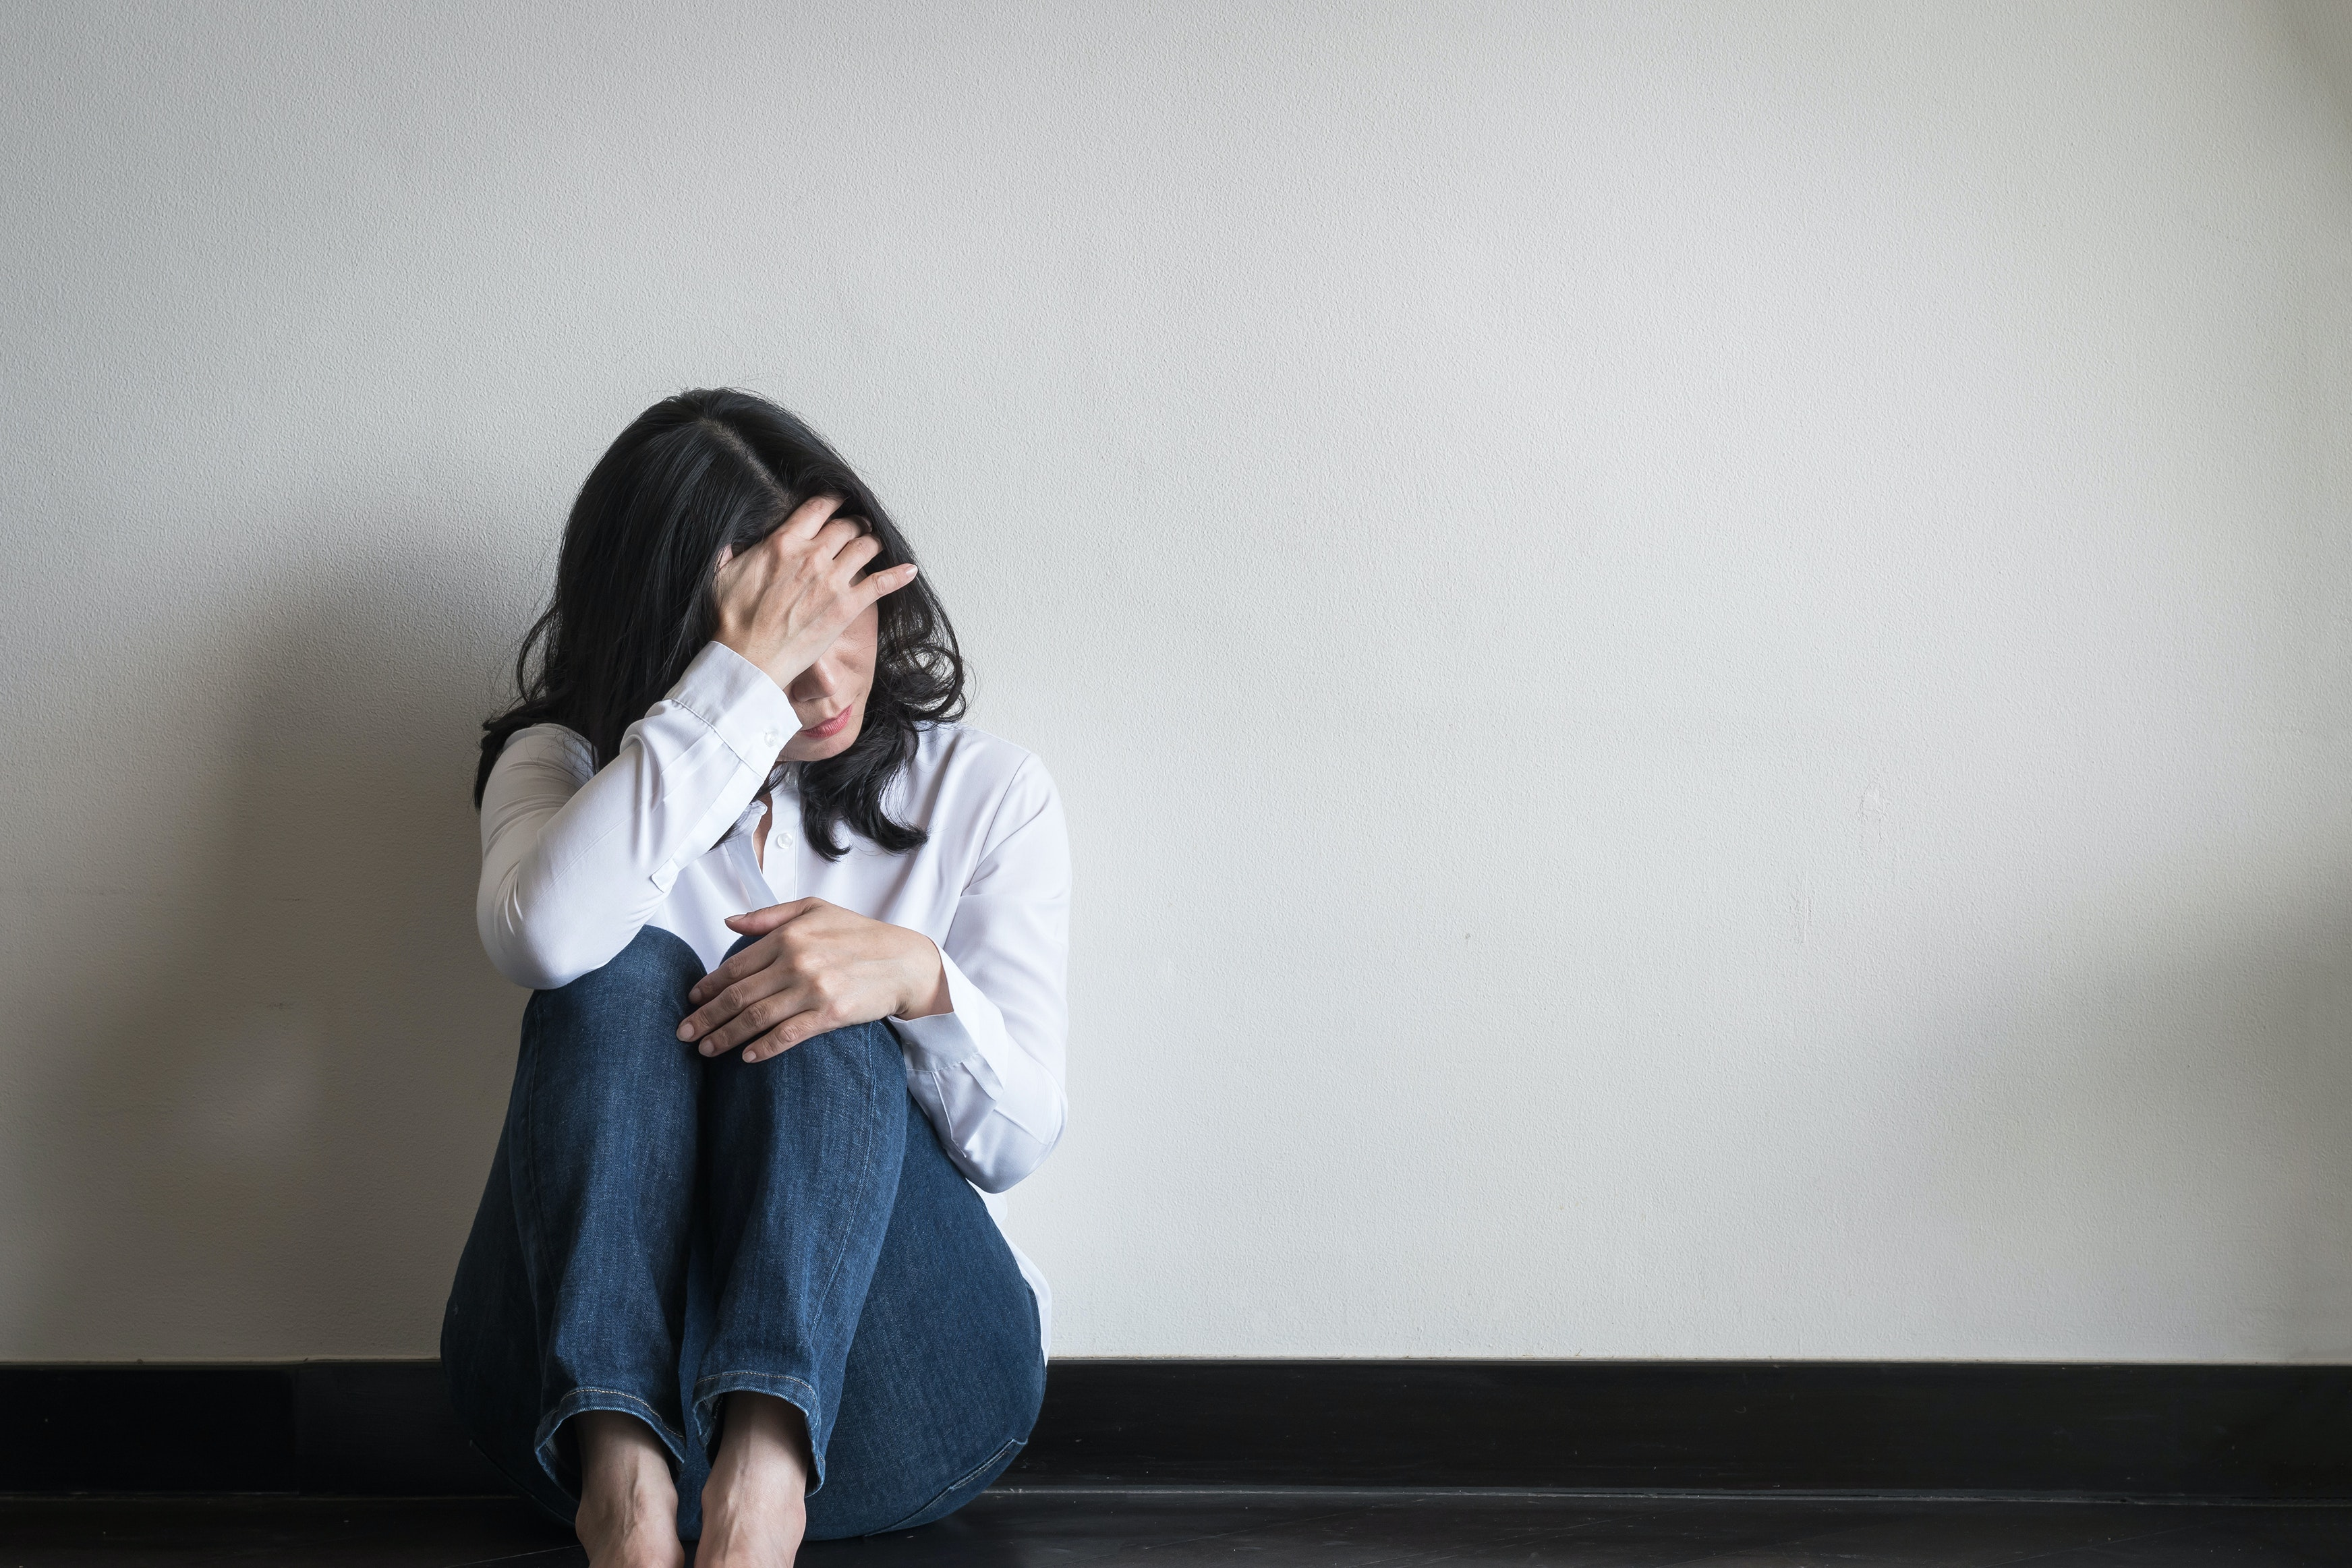 An image depicting a person suffering from anxiety due to certain triggers symptoms